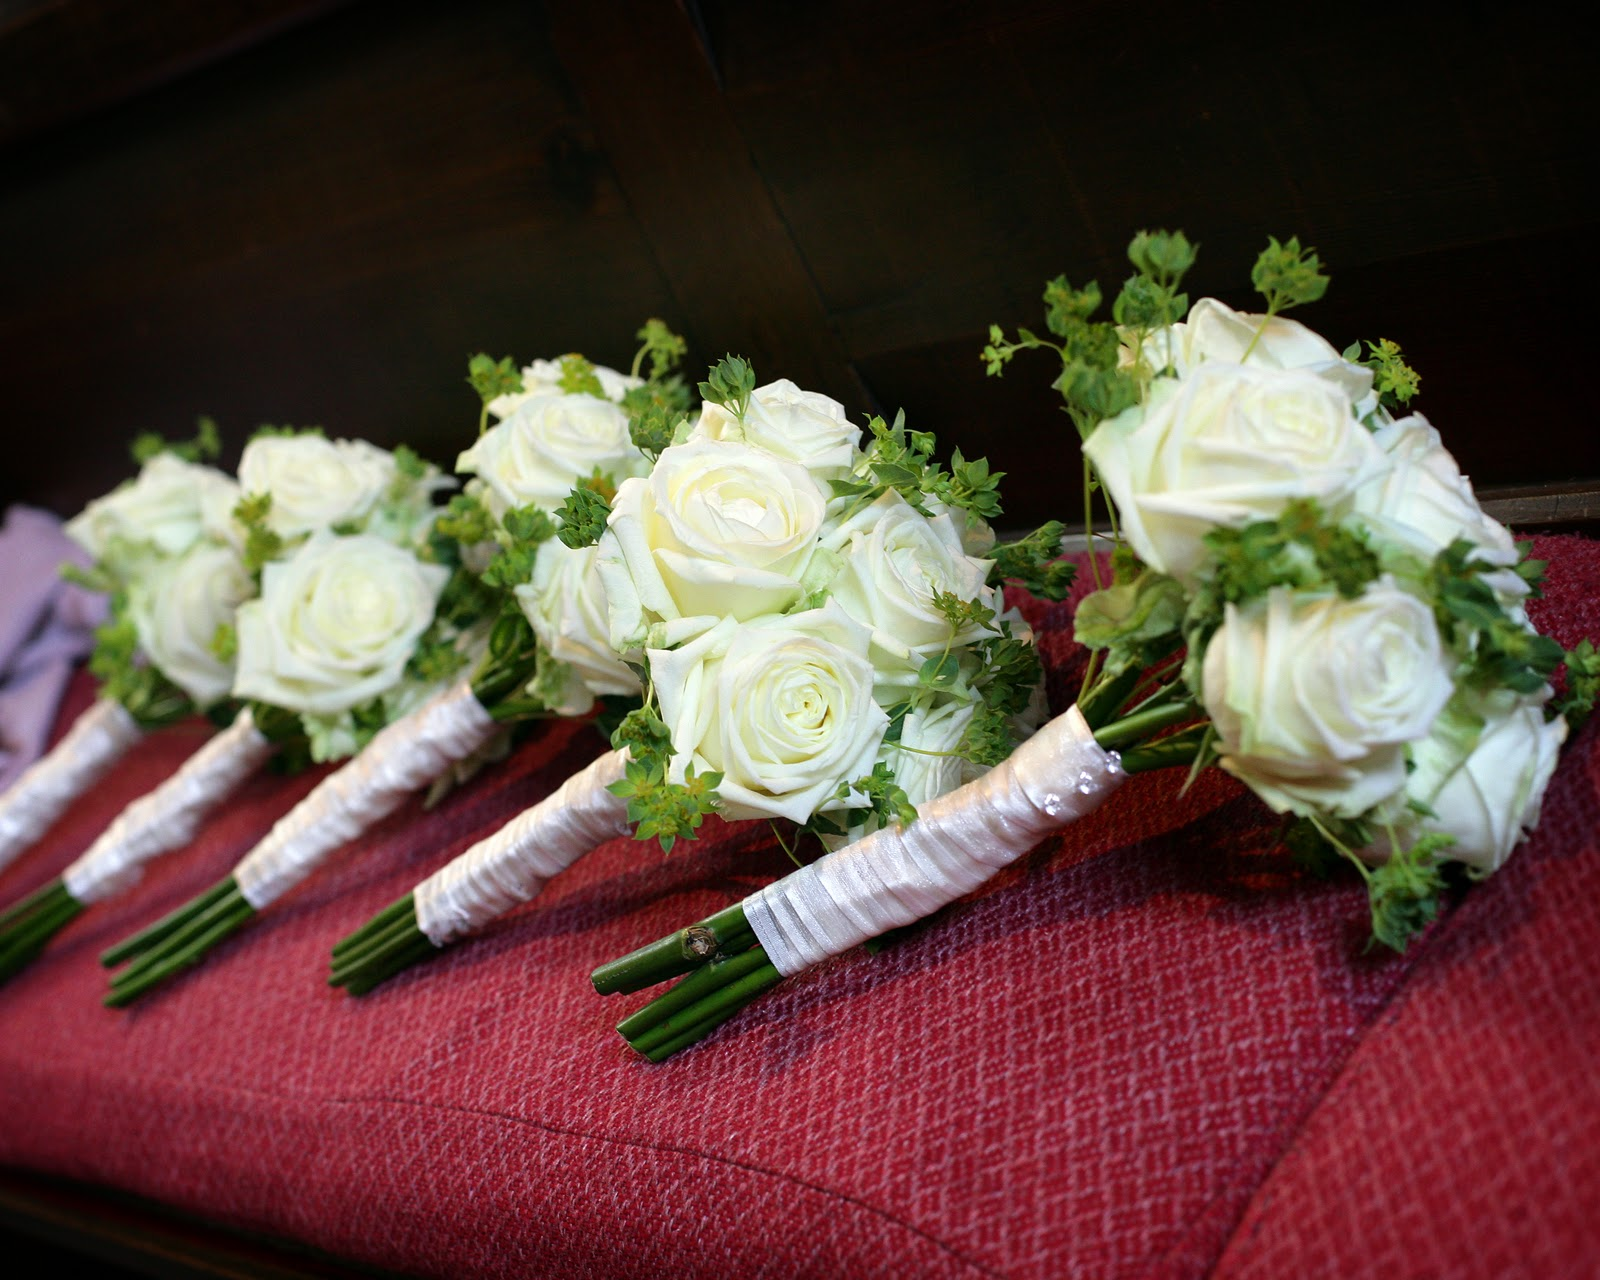 Blush Bespoke Flowers Blog: How Much Do Wedding Flowers Cost?